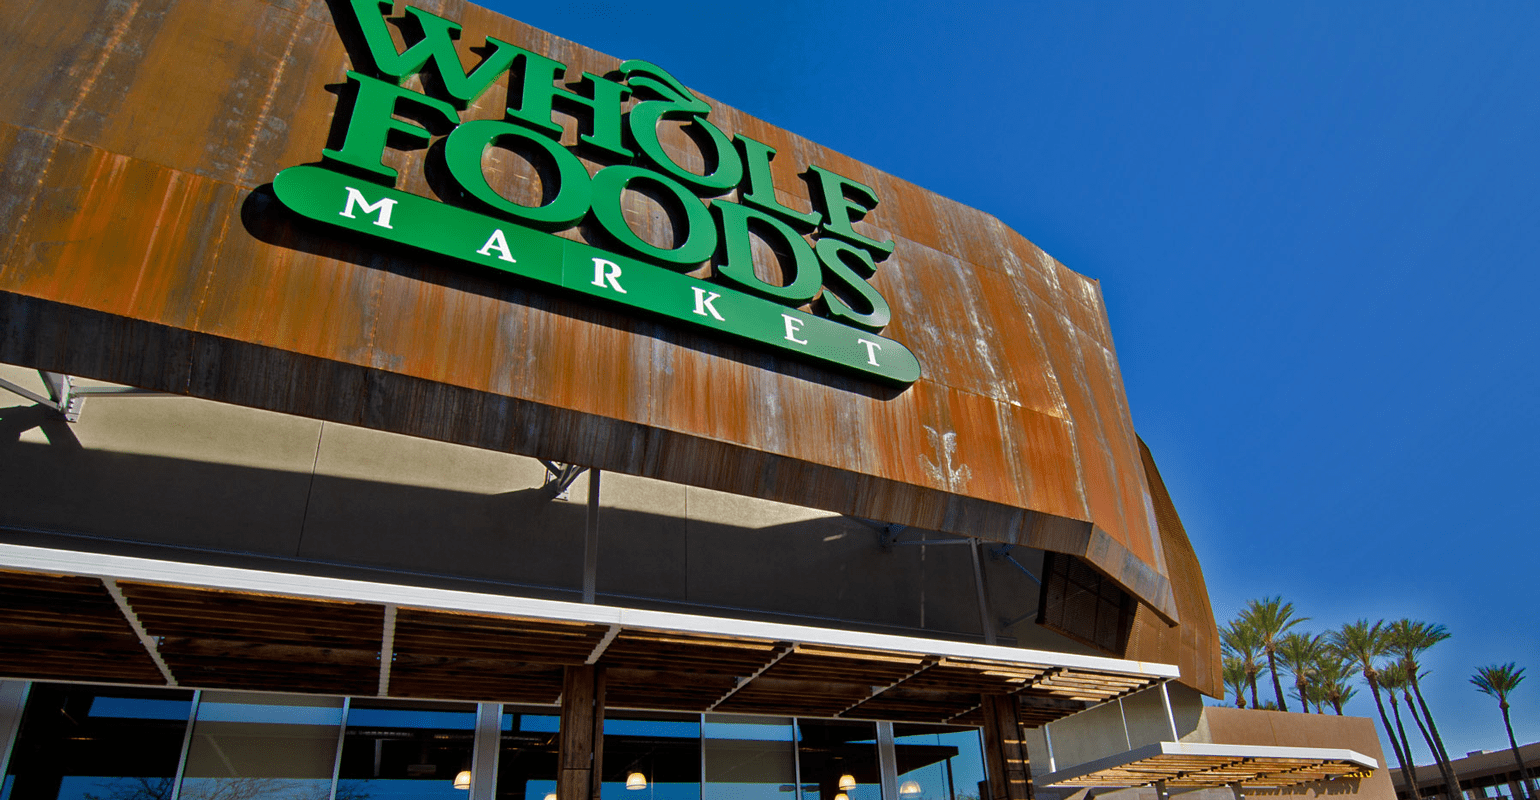 Amazon Whole Foods Slow Growth For Amazon In Store Sales But Online Delivery